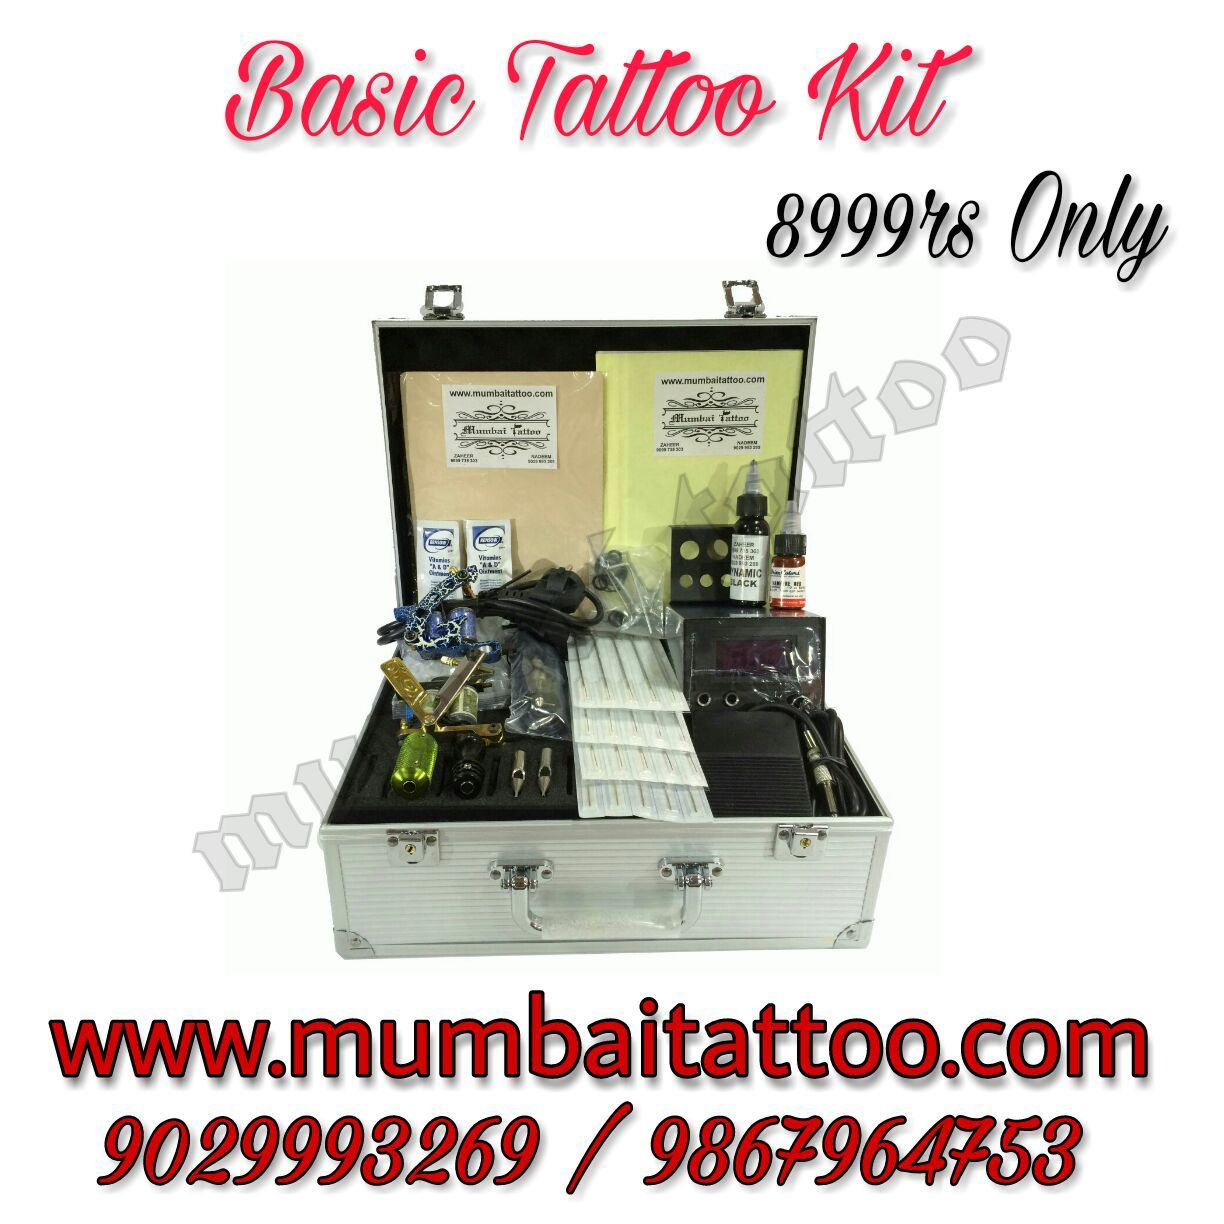 Basic tattoo kits only in 8999 rs by TATTOO MACHINES KITS WITH ...